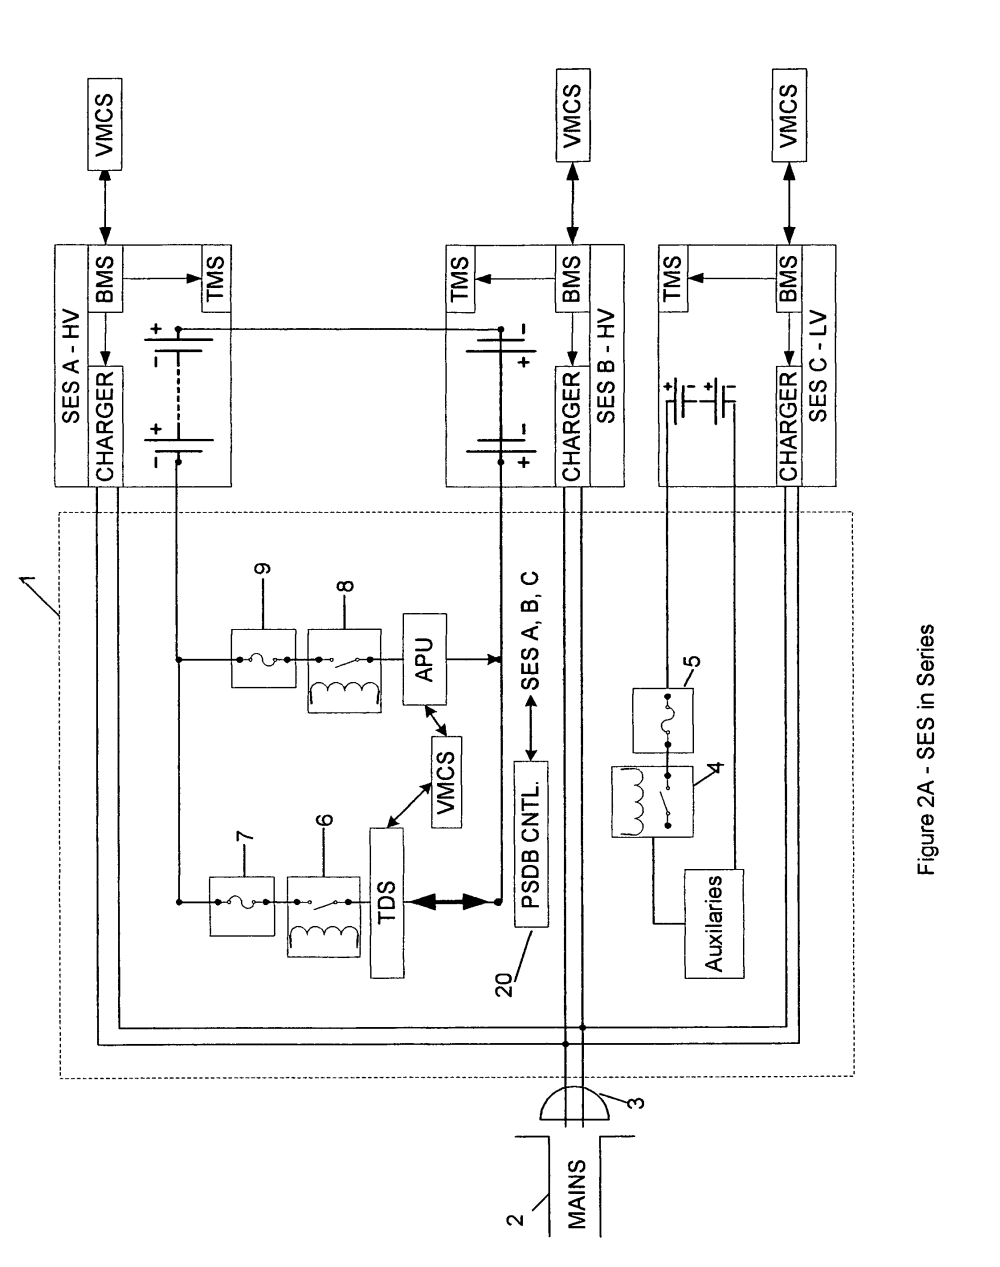 medium resolution of us07830117 20101109 d00002 bluebird bus wiring diagram blue bird school bus wiring diagram startrans bus wiring